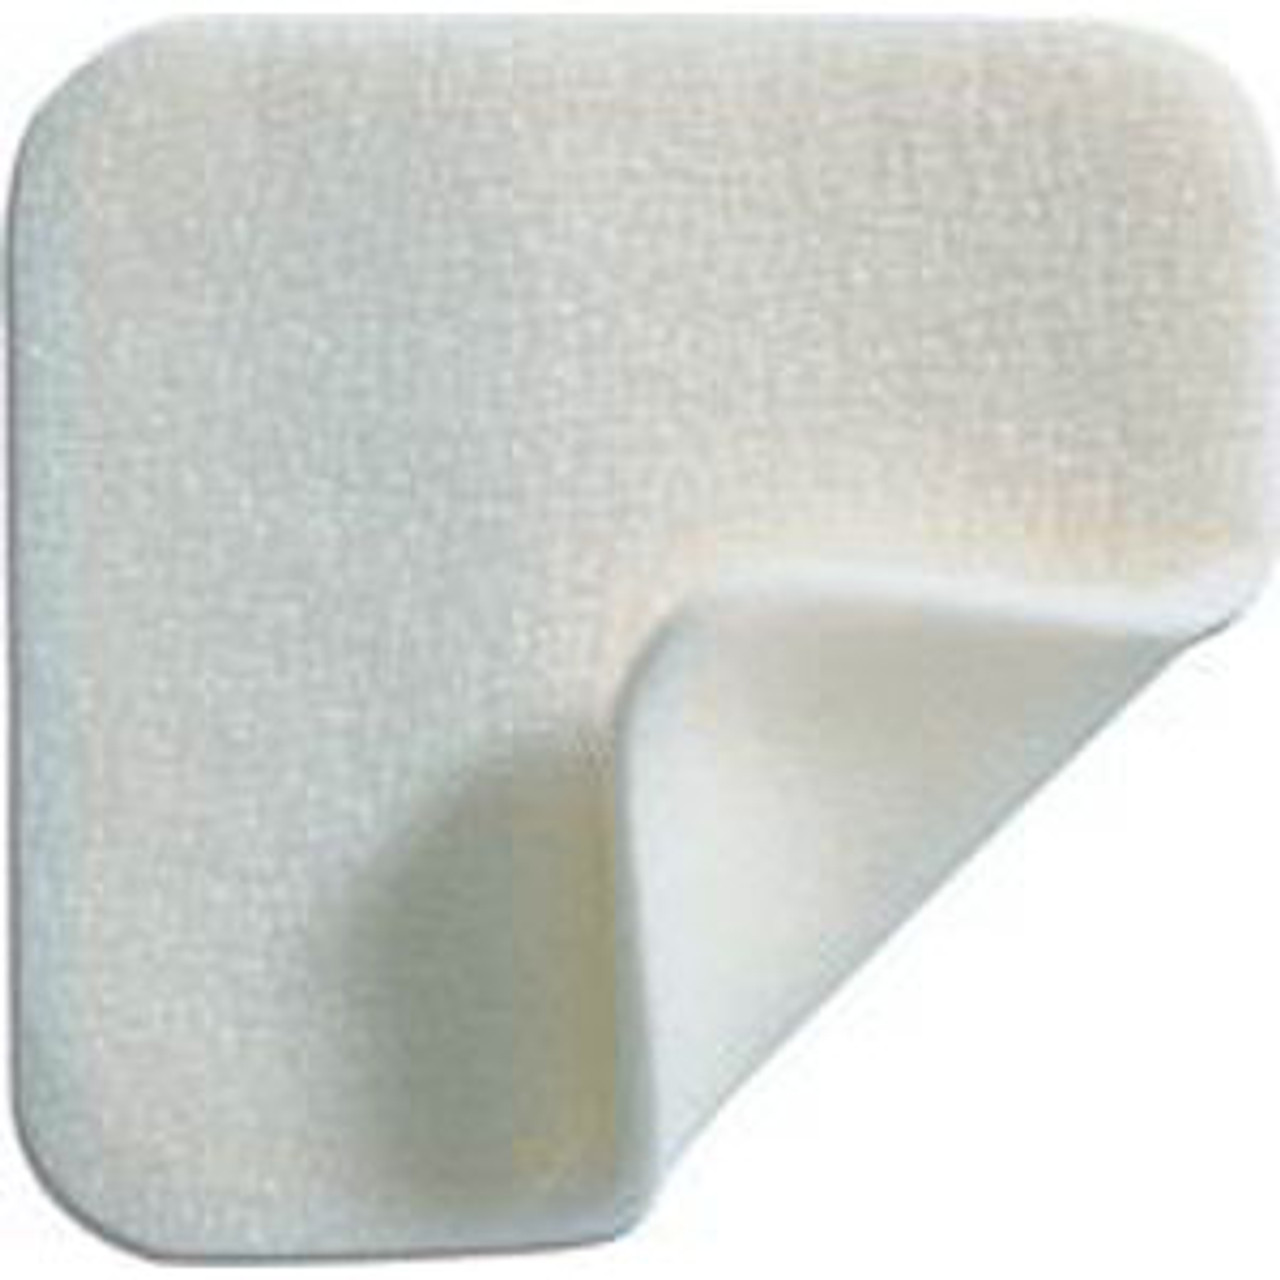 Mepilex - Soft and conformable foam dressing: 8˝ x 8˝ (20 x 20 cm), 1/box